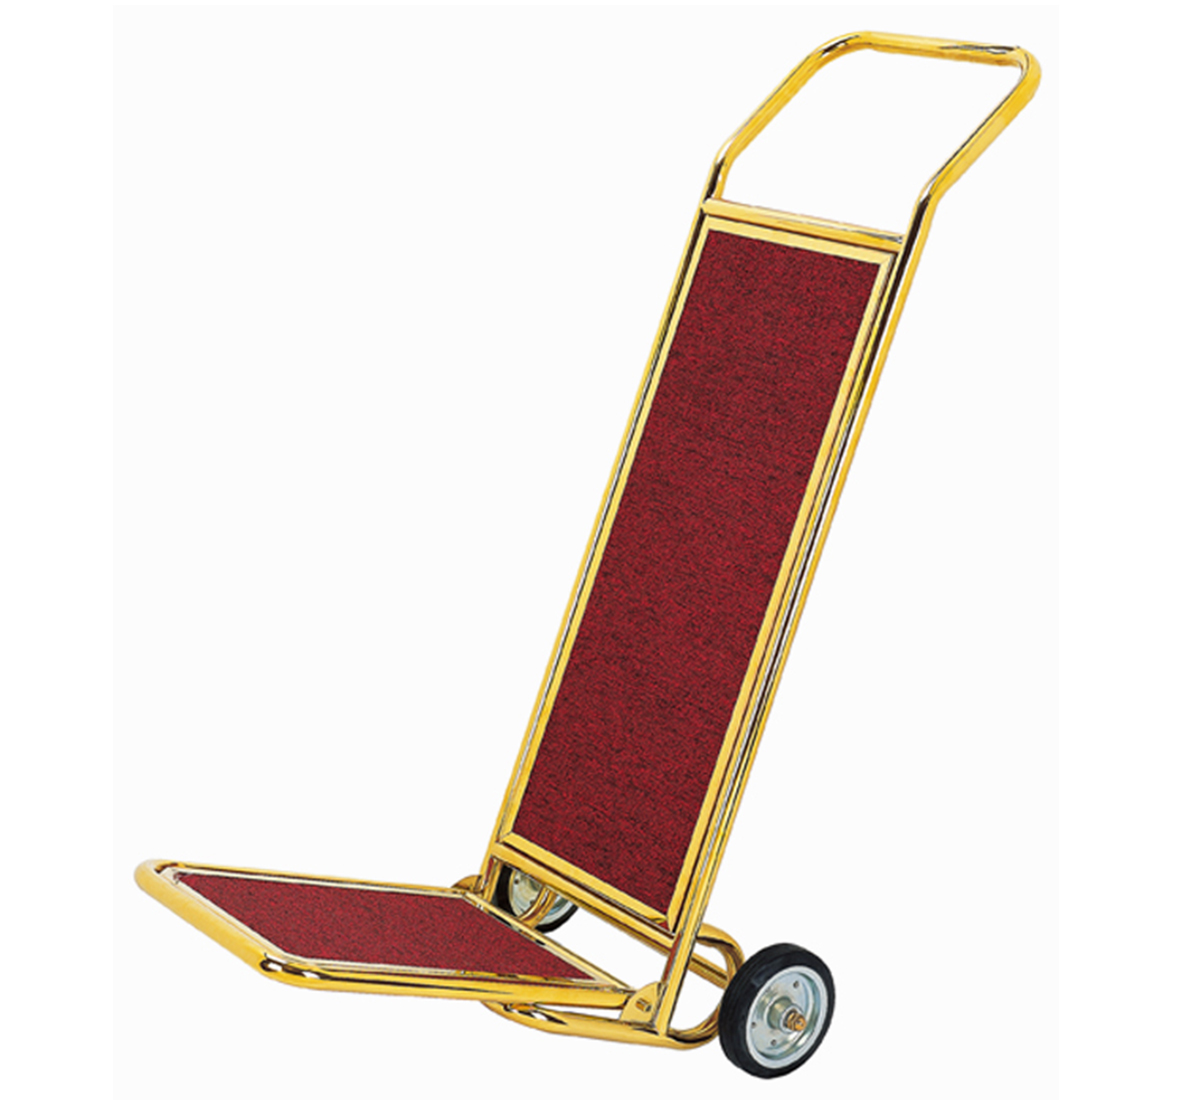 Luxury foldable golden luggage cart